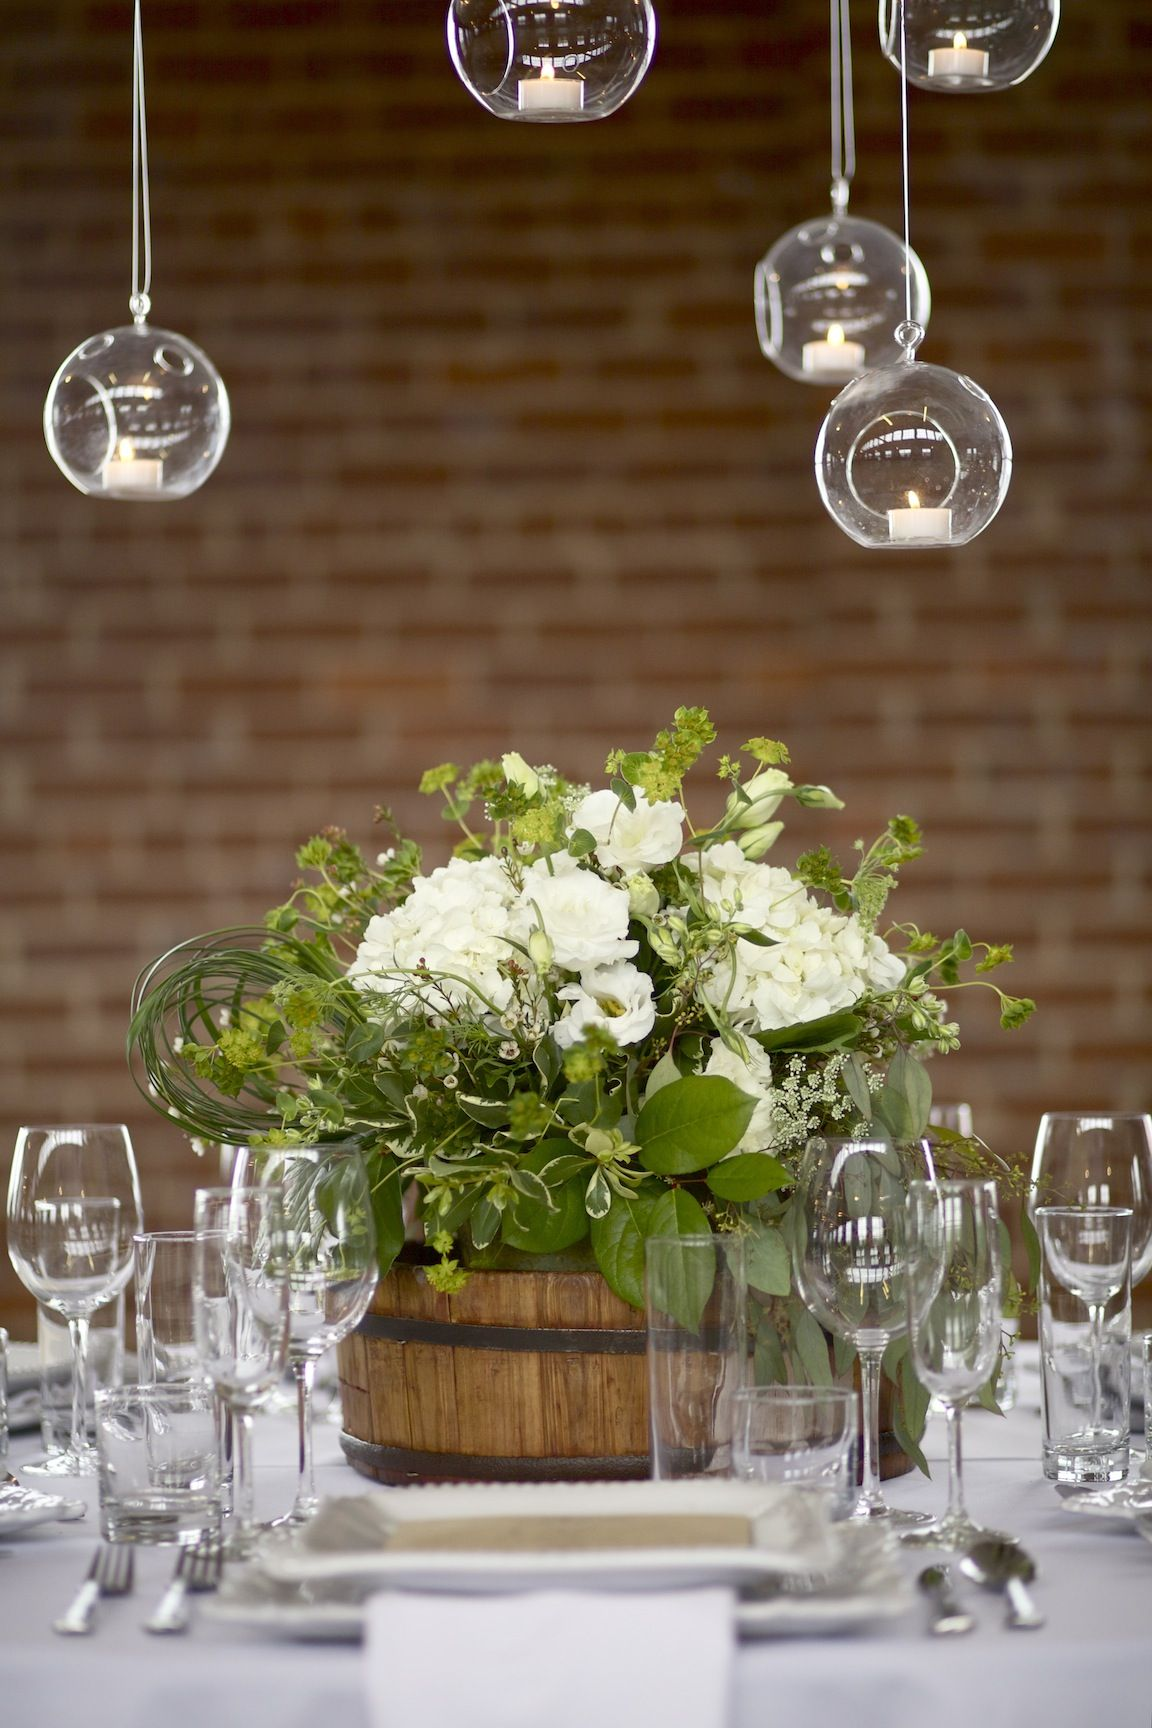 Fresh table centerpiece designed by blue ivy flowers wedding ideas fresh table centerpiece designed by blue ivy flowers izmirmasajfo